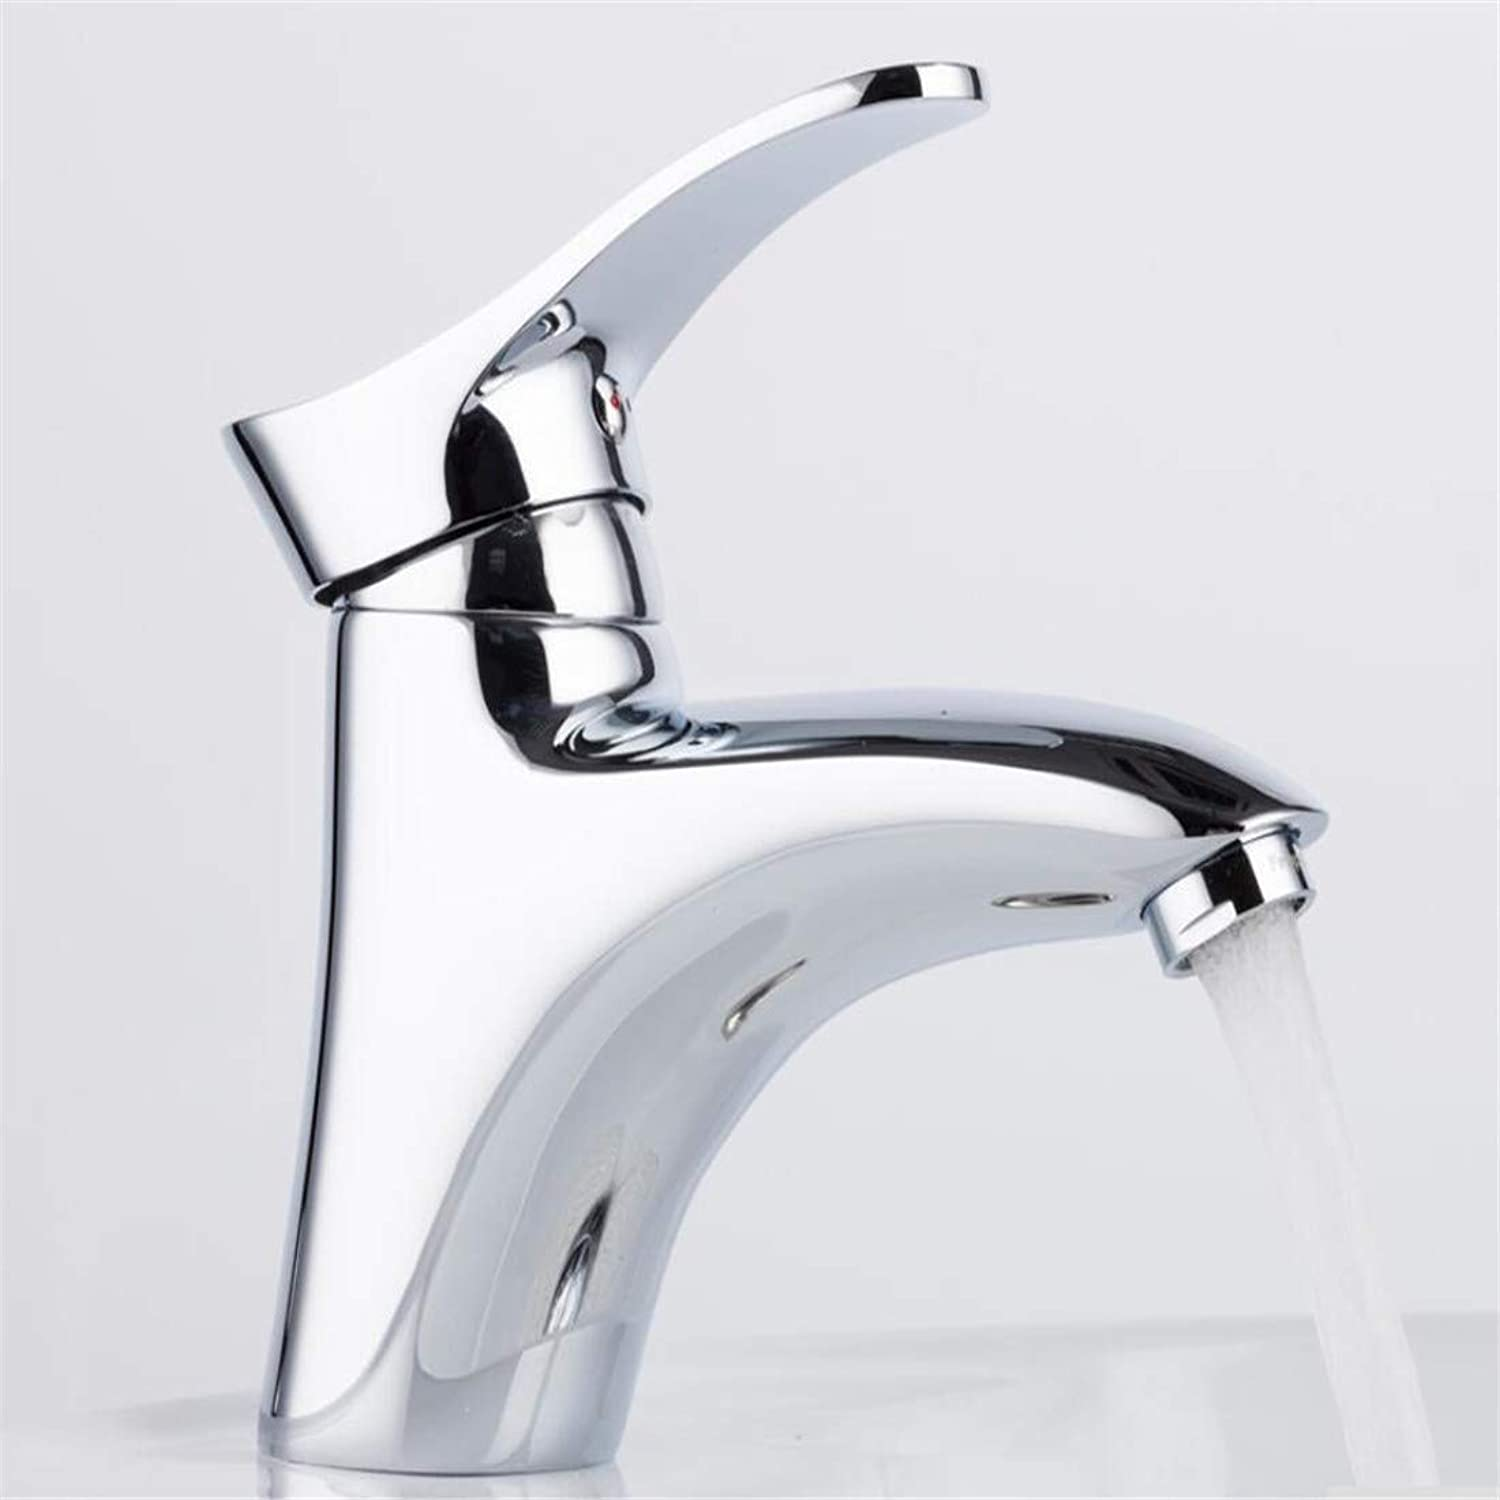 360 Degree redating Vintage Brassbrass Bathroom Basin Taps Faucets Mixer Hot and Cold Water Mixer